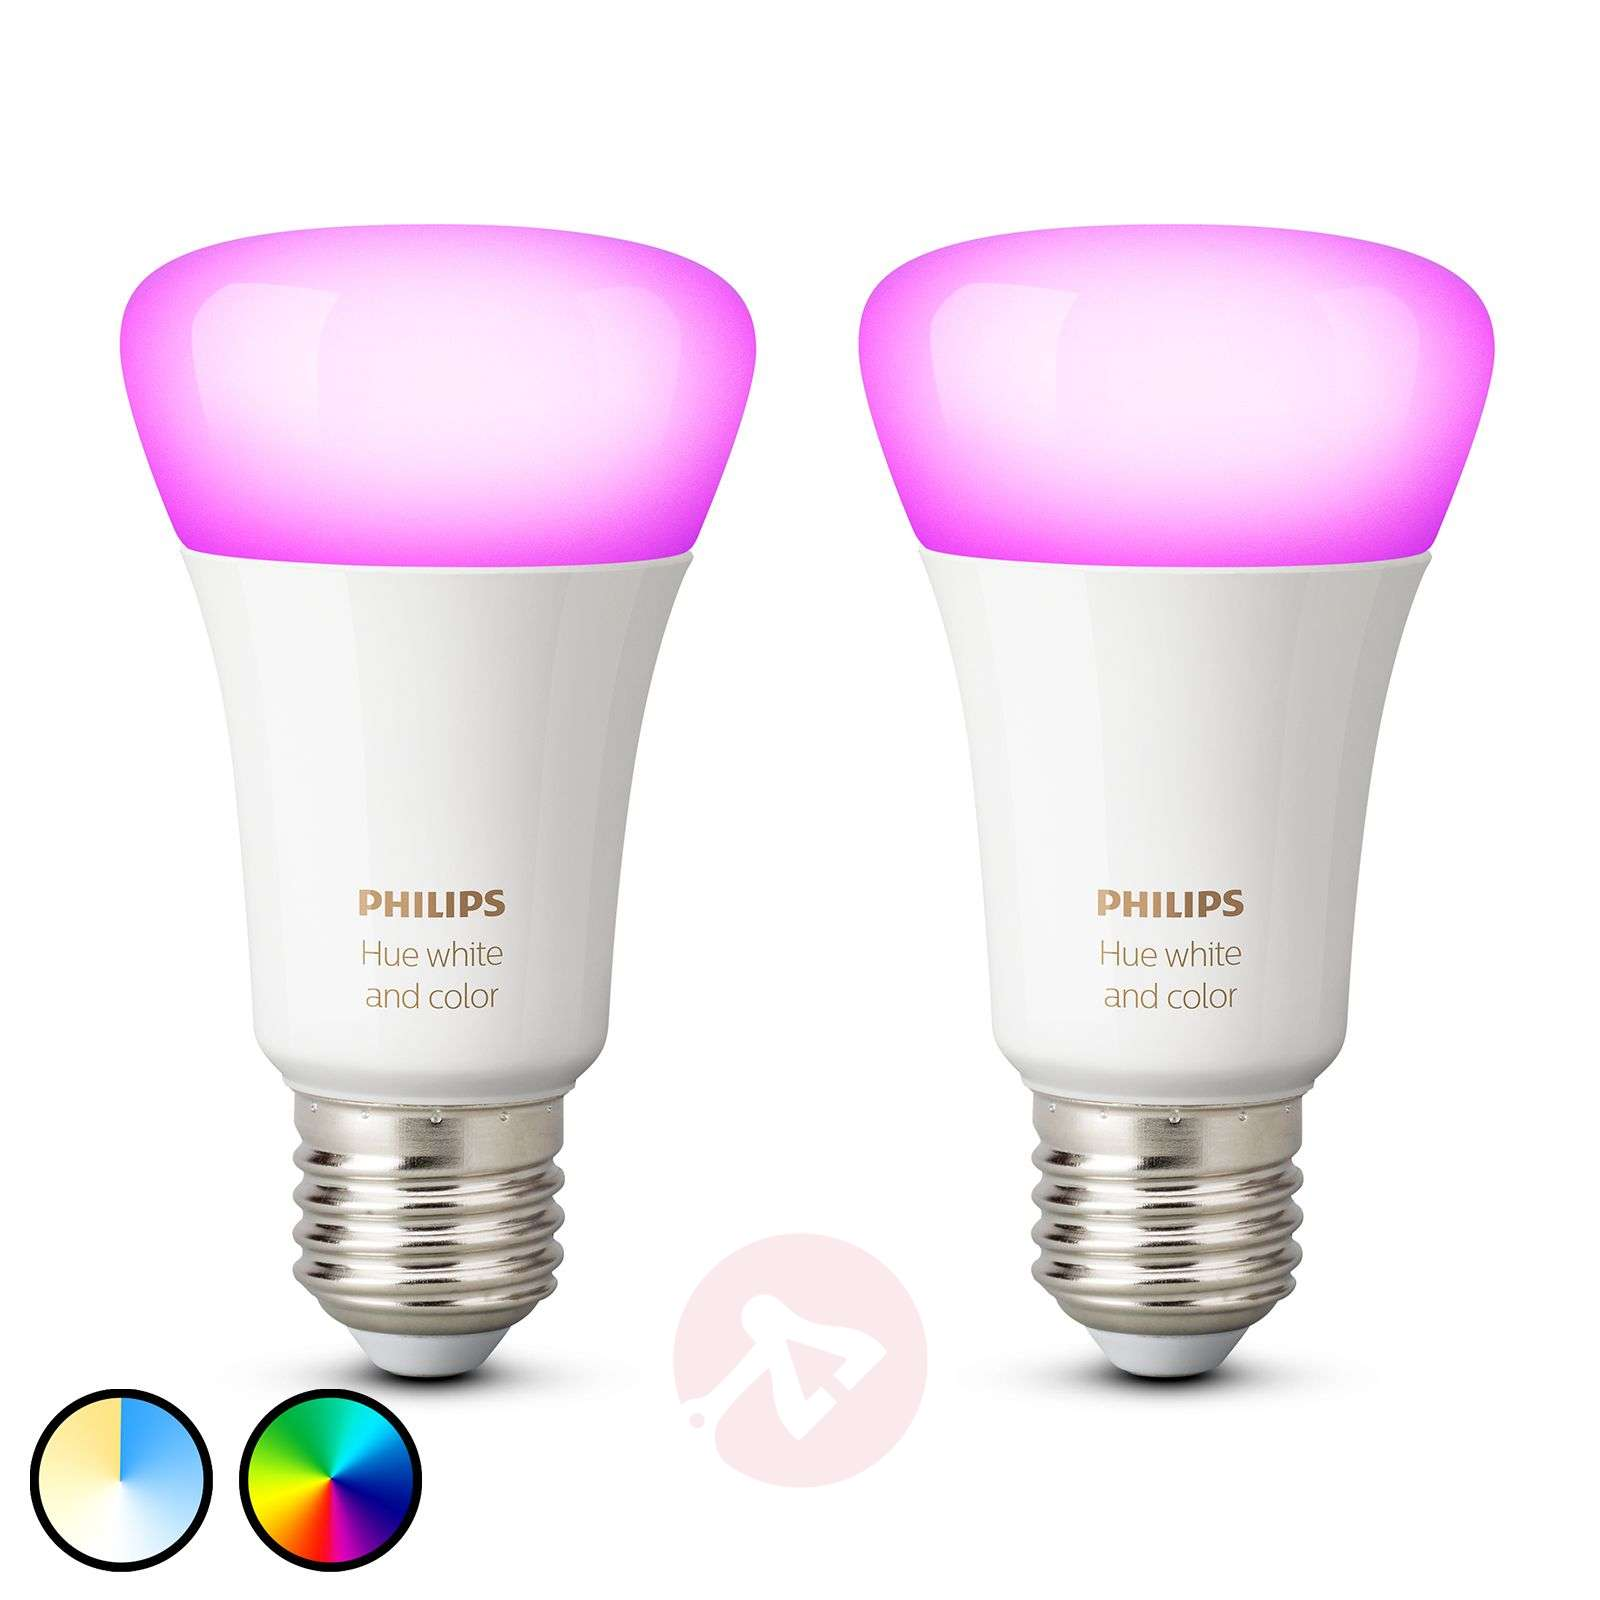 Philips Hue White and Color Ambiance 9W E27, 2 szt.-7534124-01